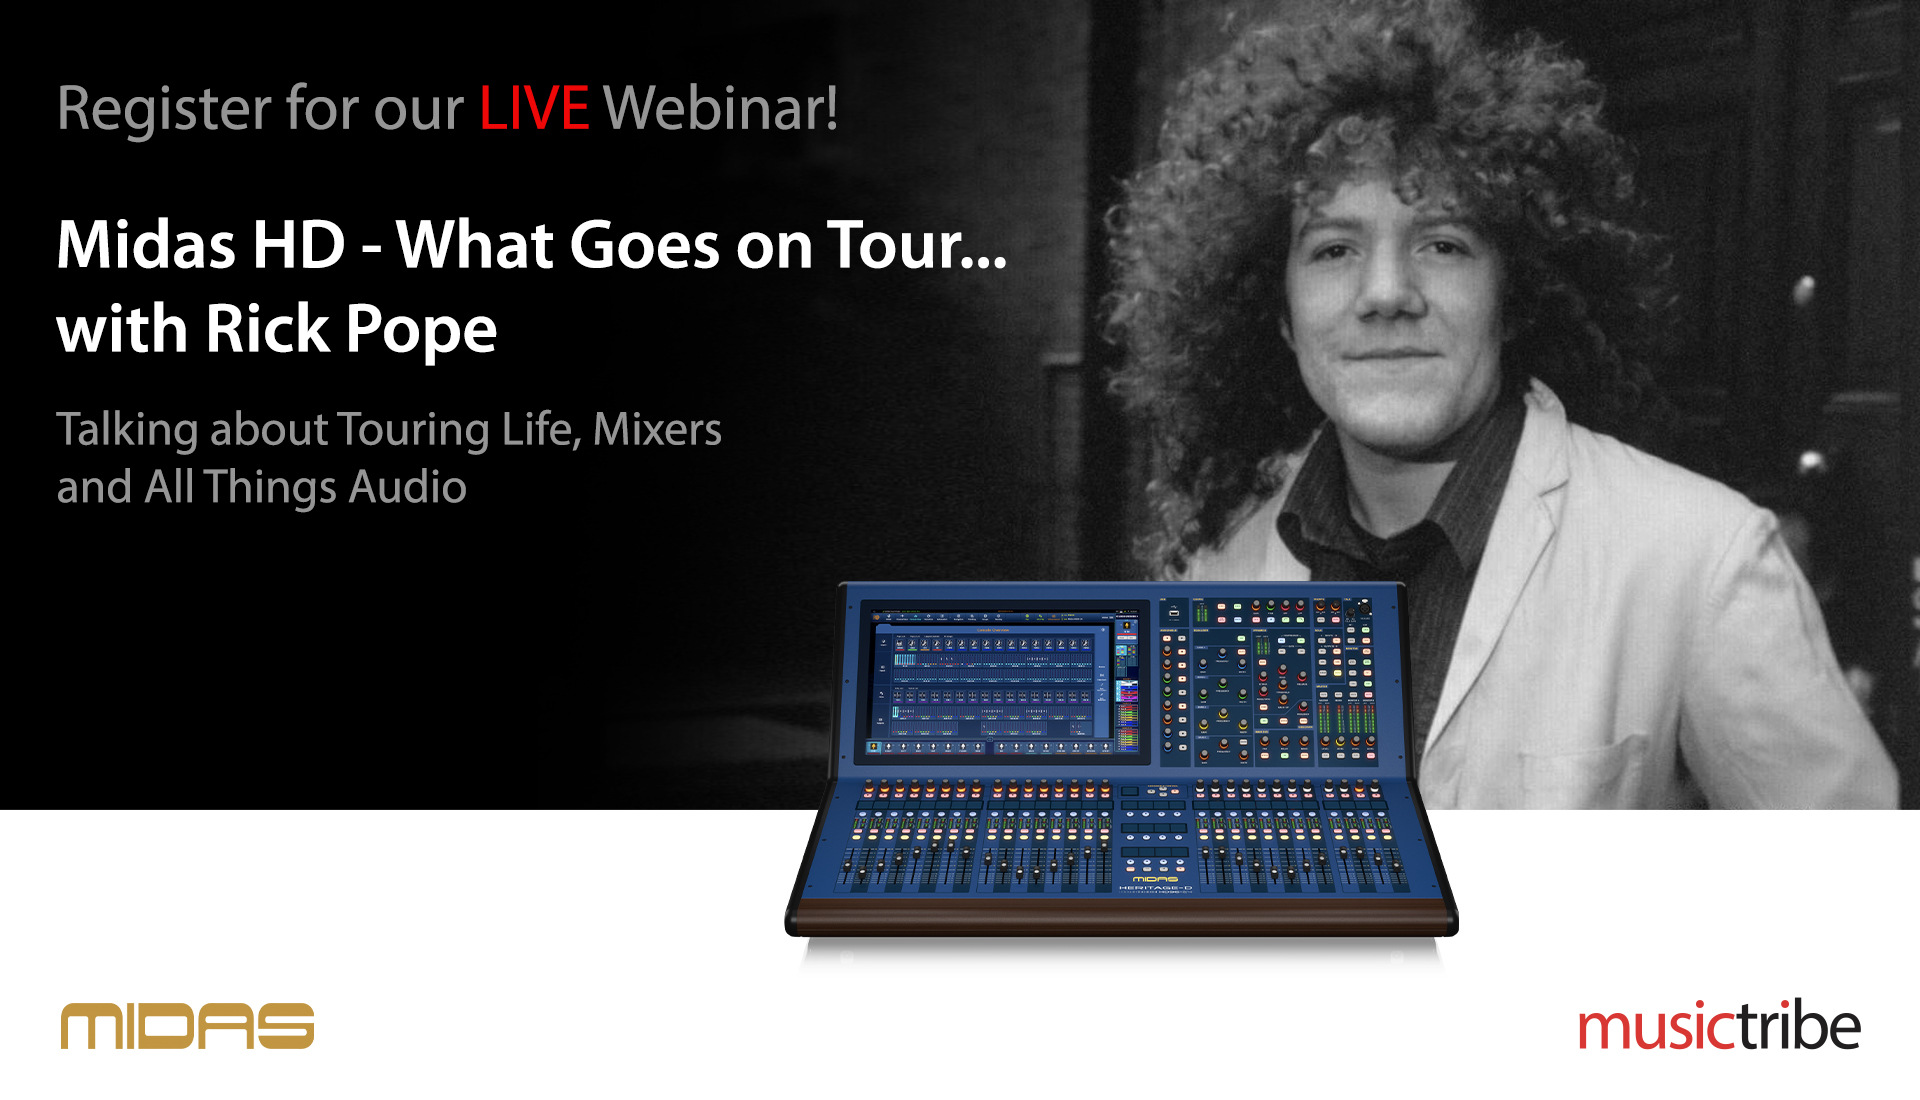 Midas LIVE Webinar: What Goes On Tour... with Rick Pope